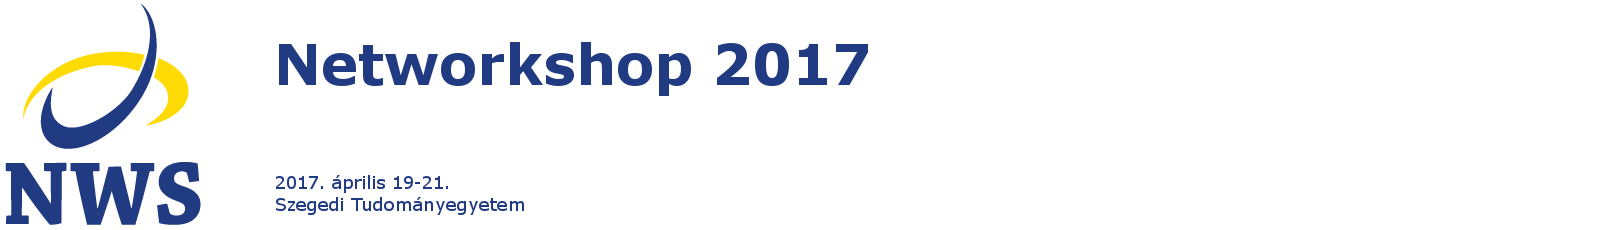 Networkshop 2017